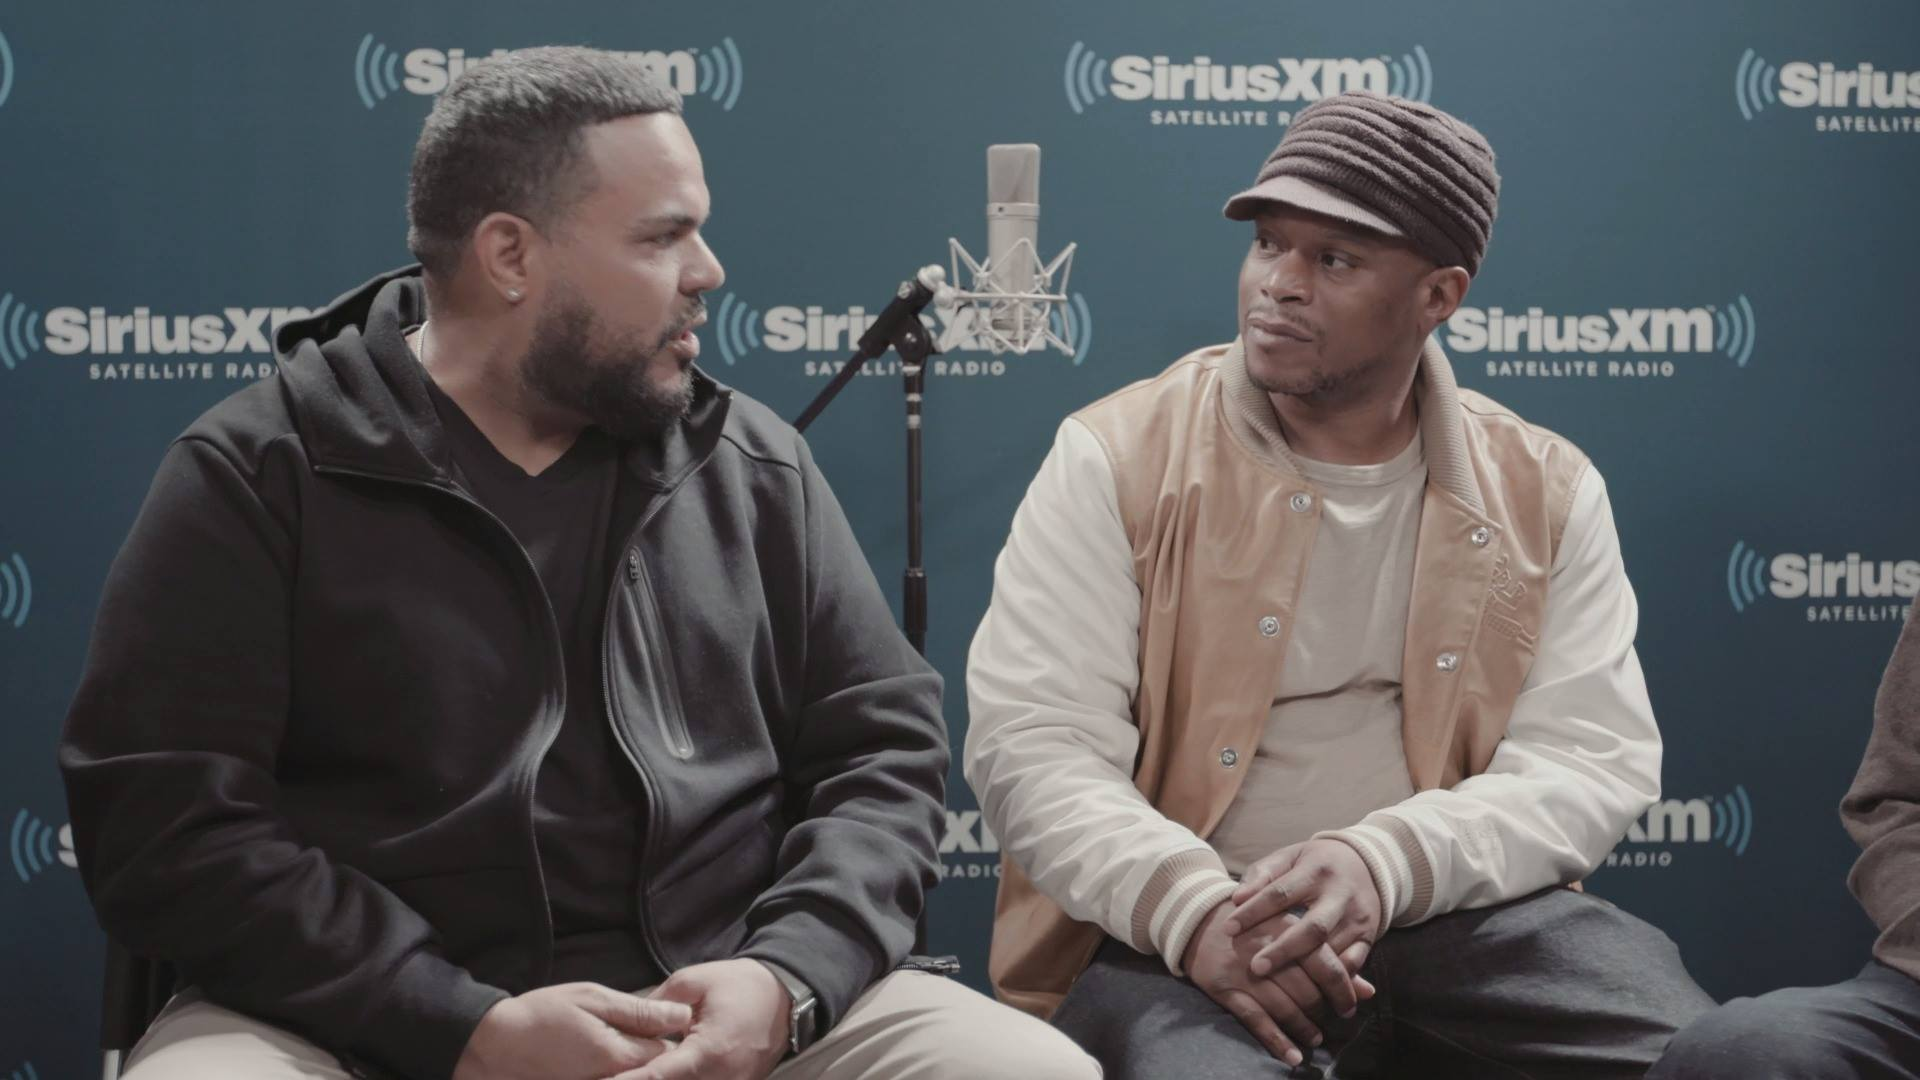 Sway Calloway links up with some legendary DJs to break down the difficulties faced when trying to get hip-hop on the radio in the 90s.